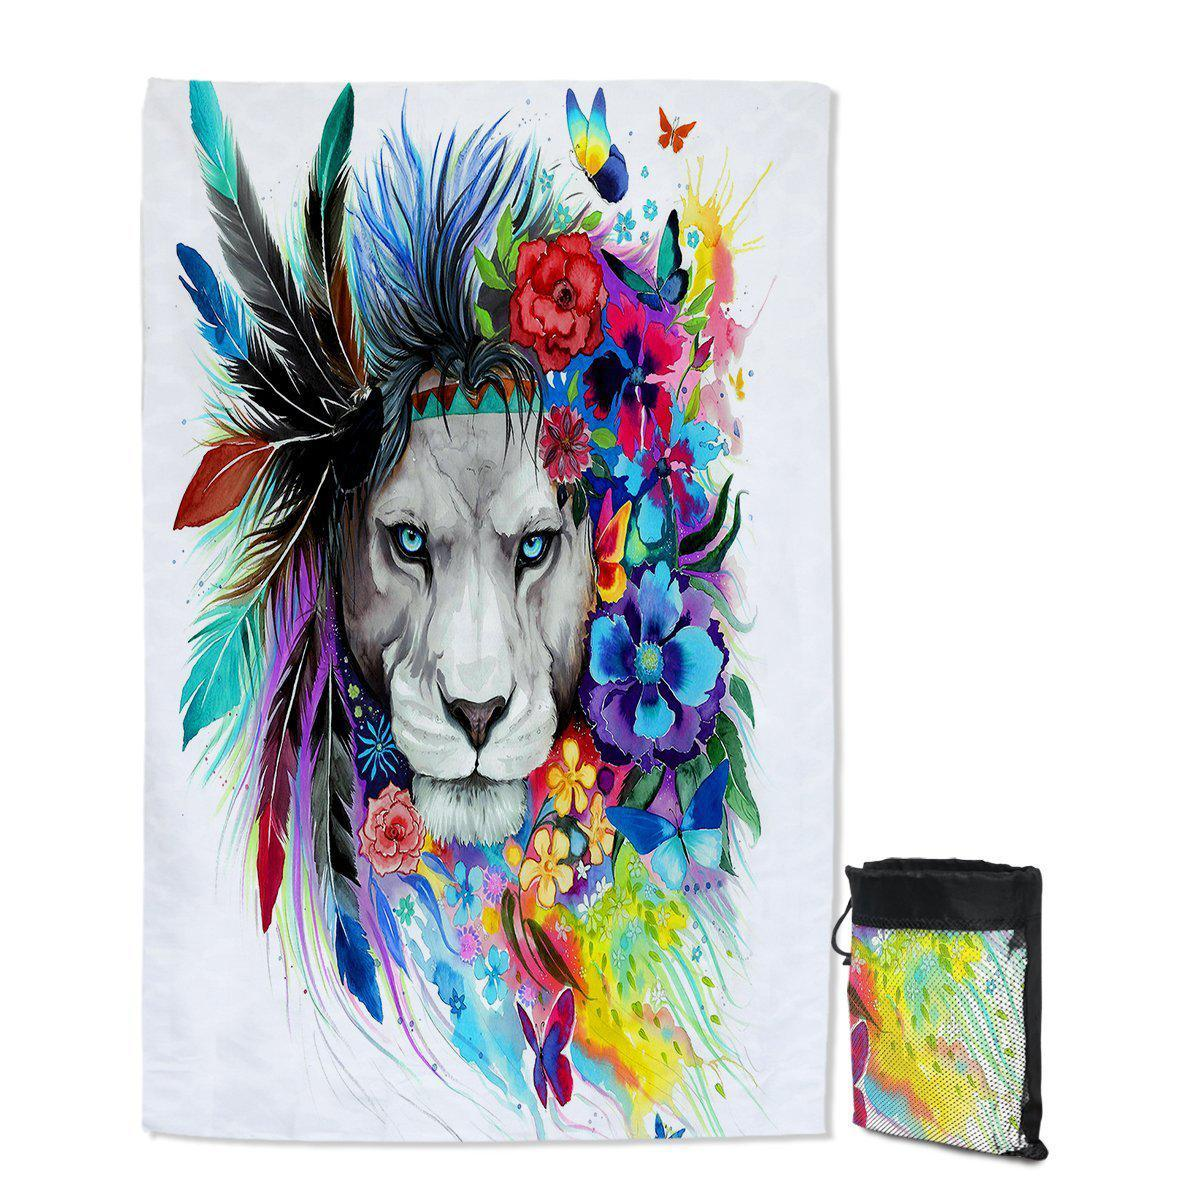 The Original Lion Vibes Sand Free Towel